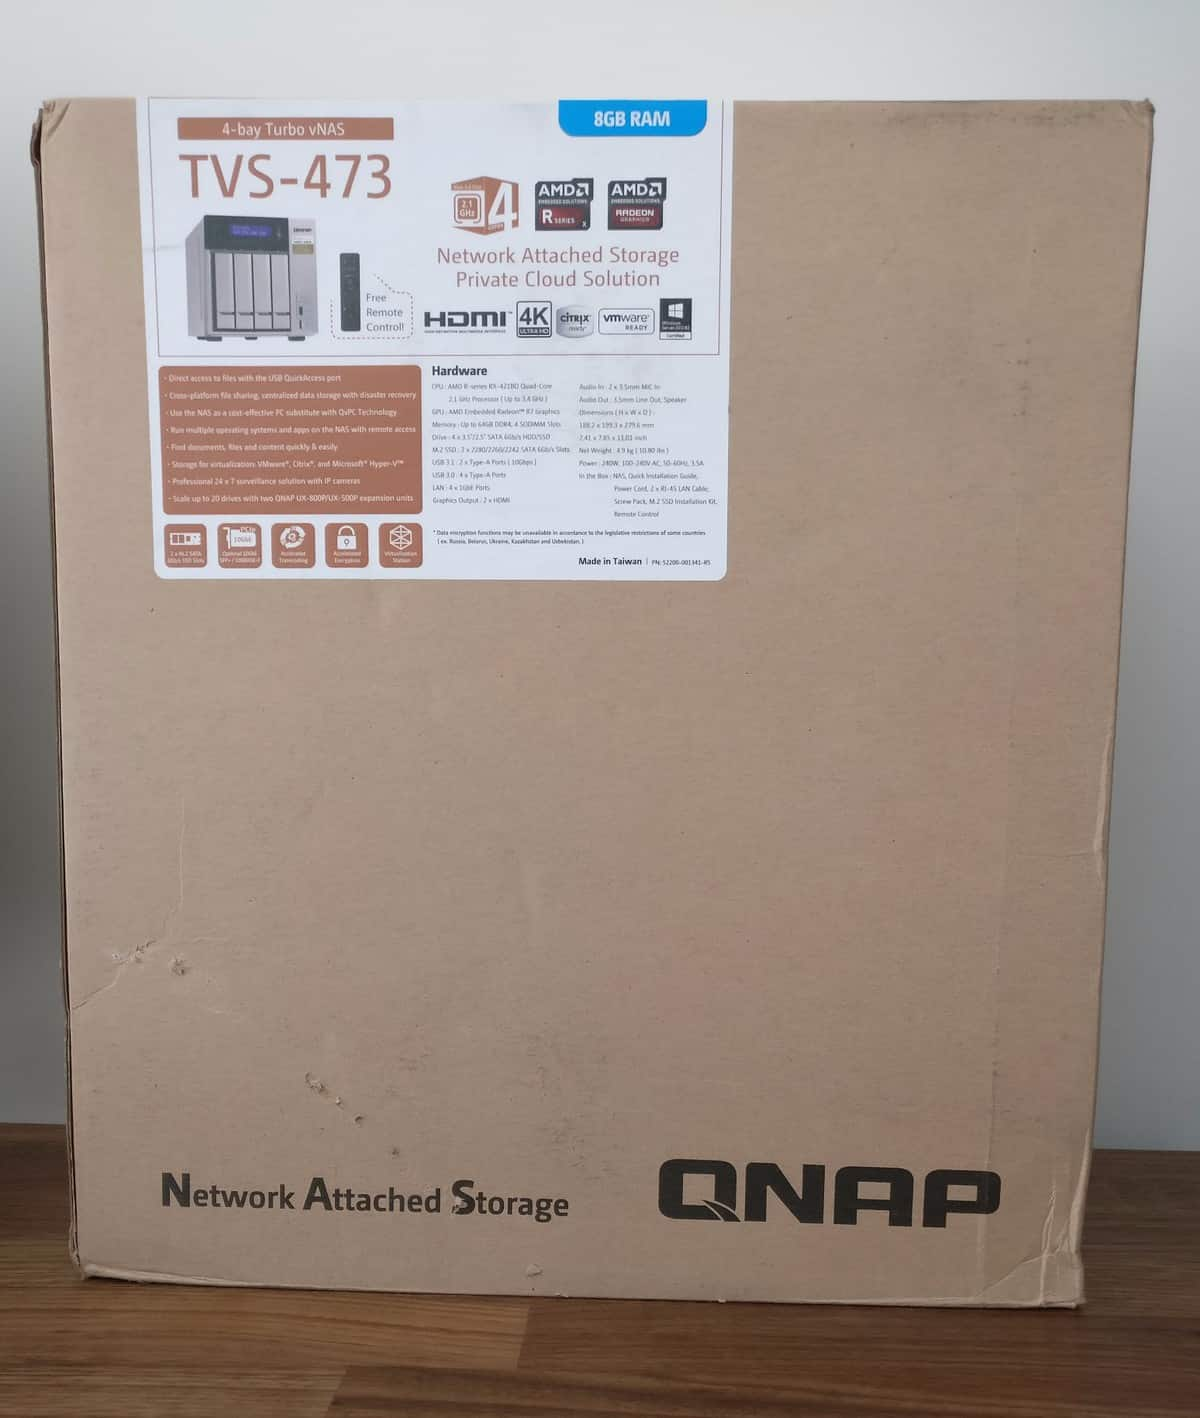 QNAP-TVS-473-Photos-01 QNAP TVS-473 4-Bay NAS Review